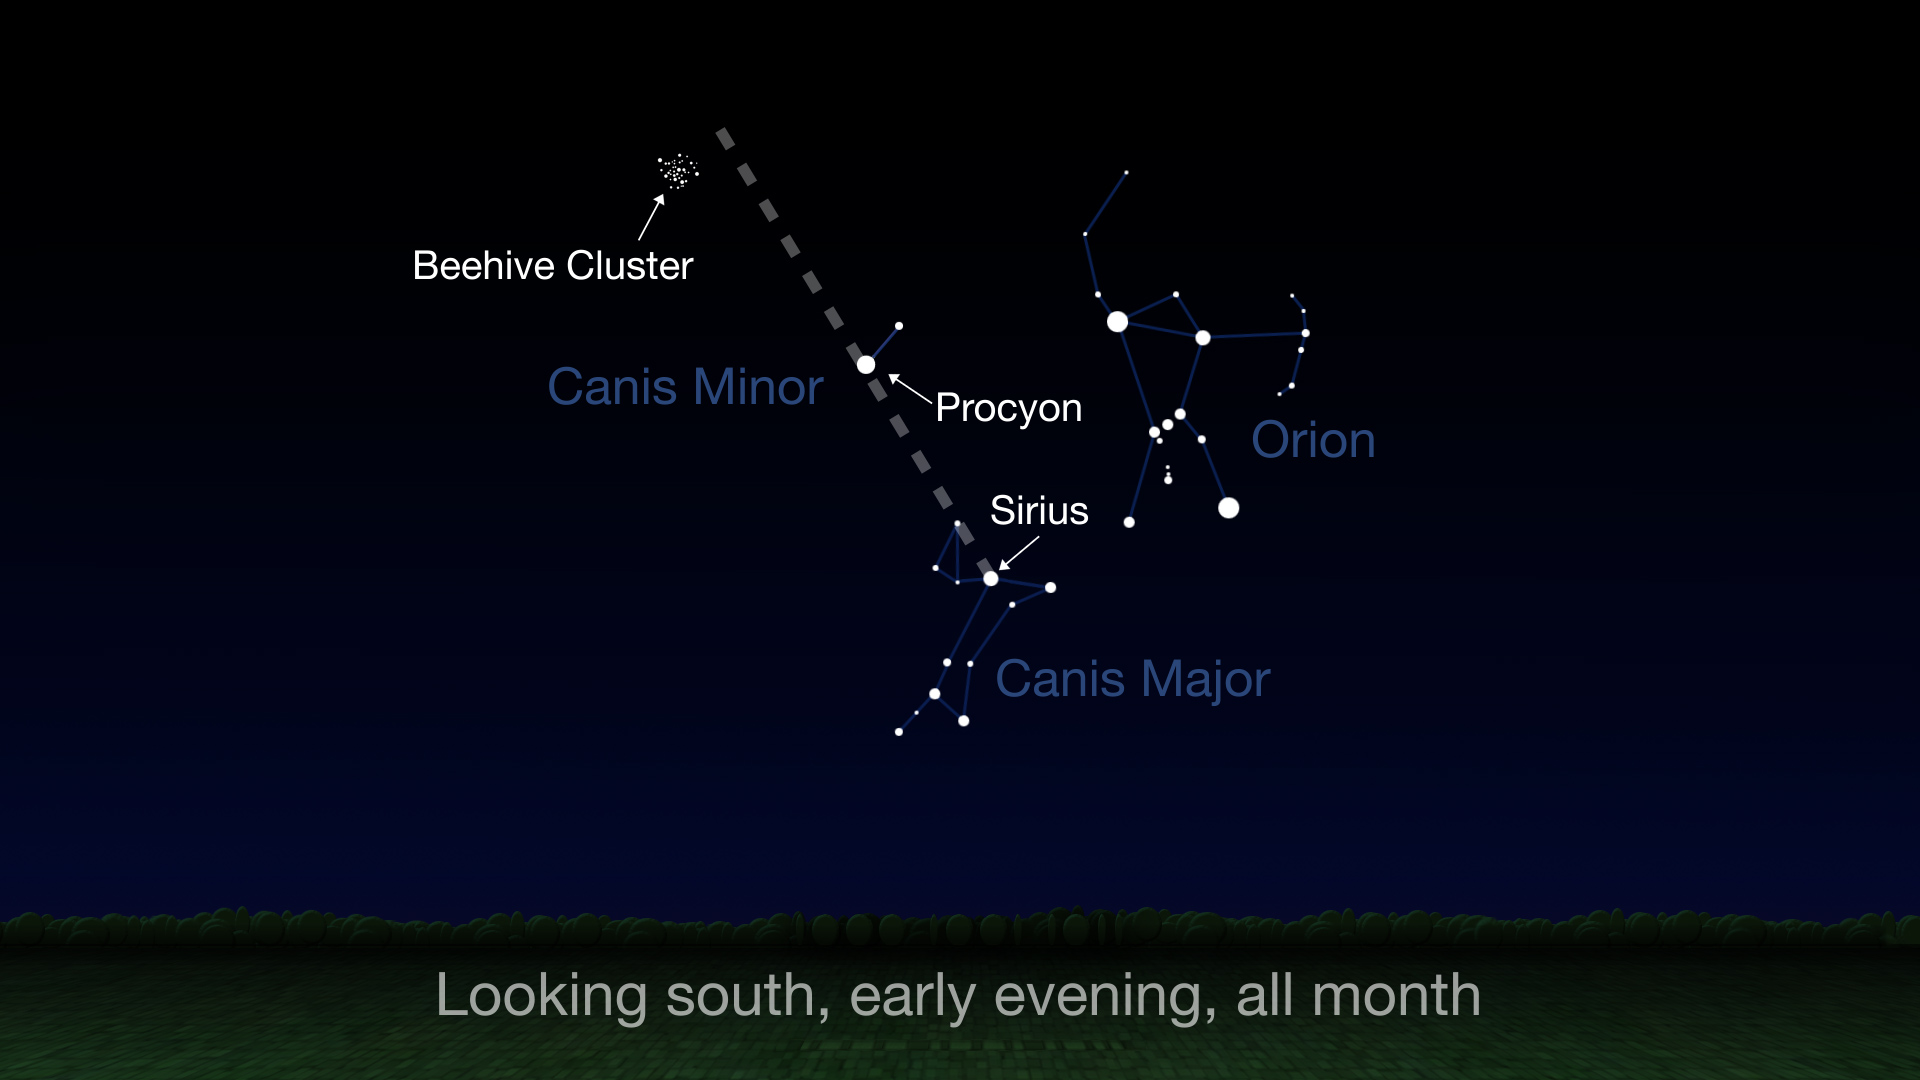 The Beehive Cluster is high in the sky to the south all of March.